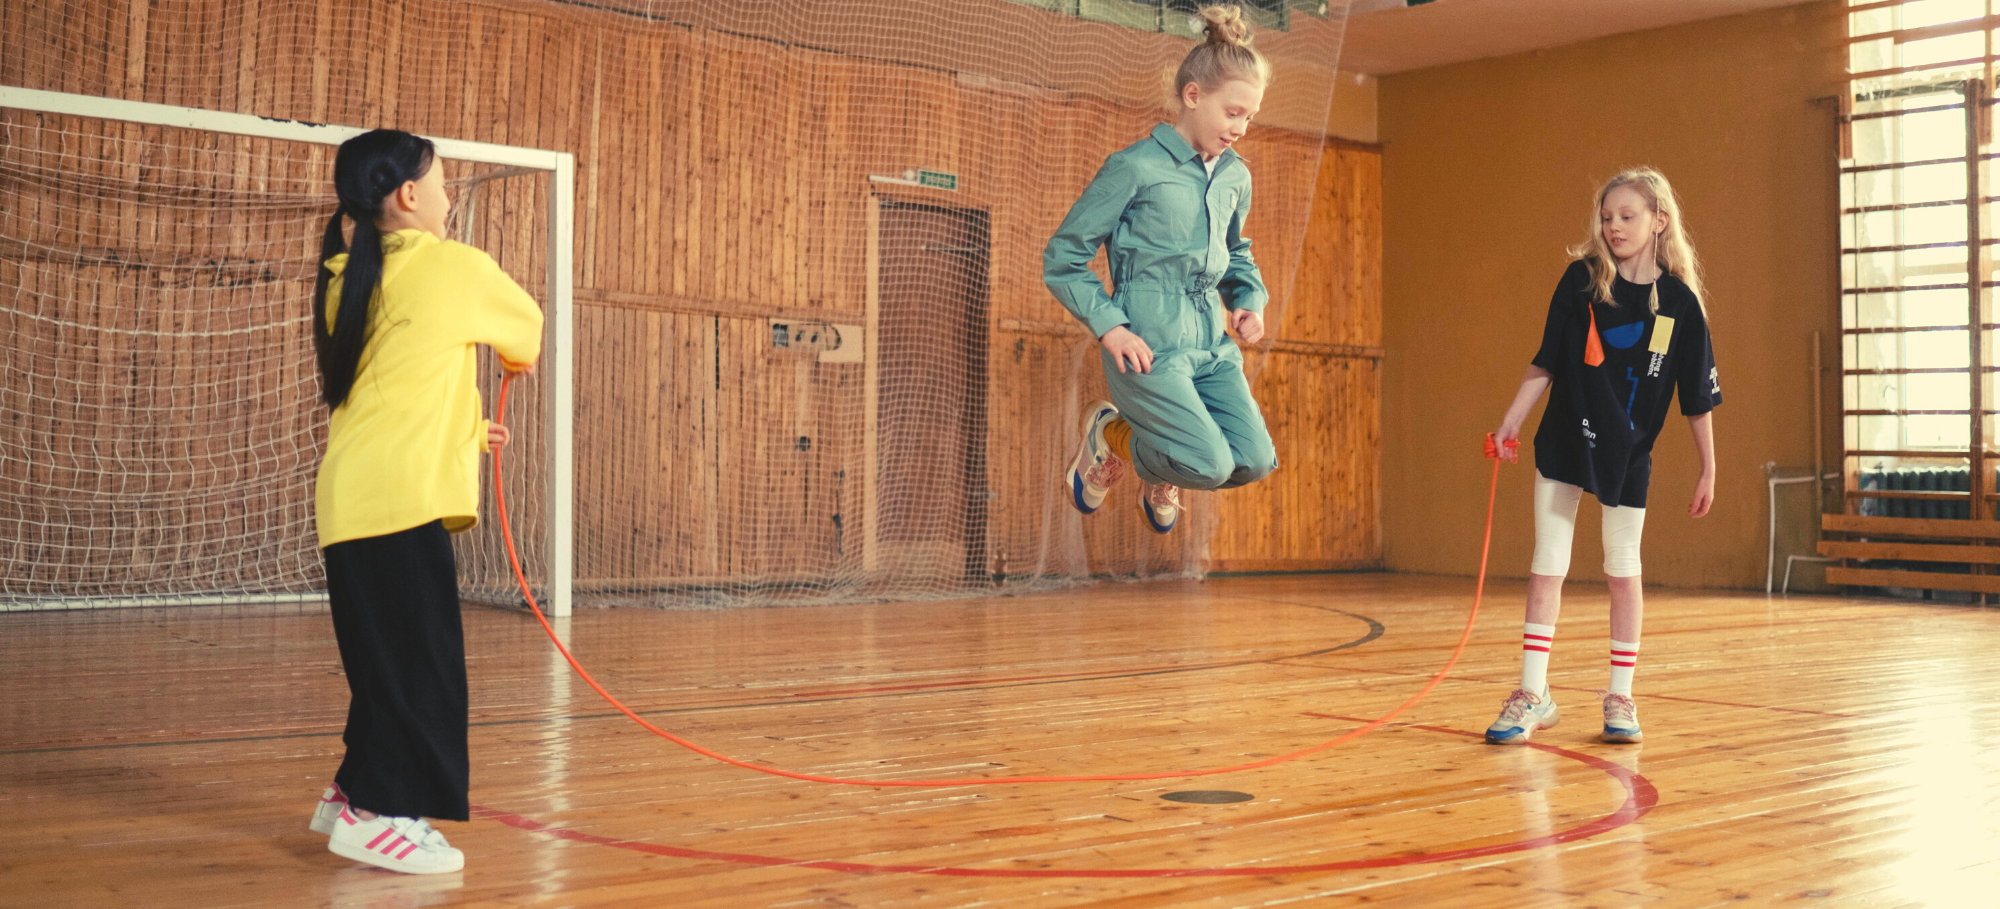 Three girls in a gym playing jump rope.